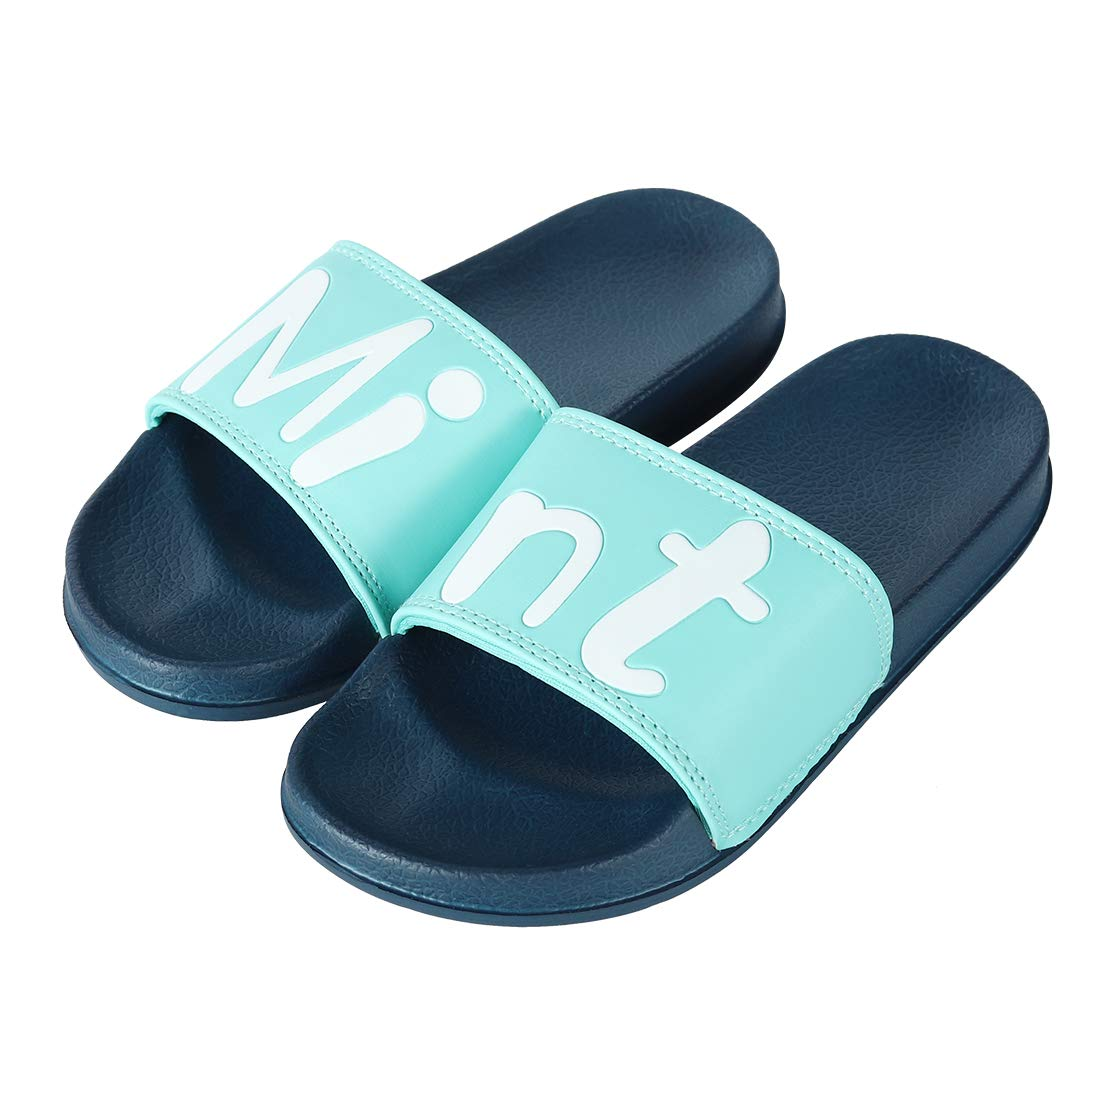 ZooYi Boys Girls Cartoon Bathroom Slide Slippers